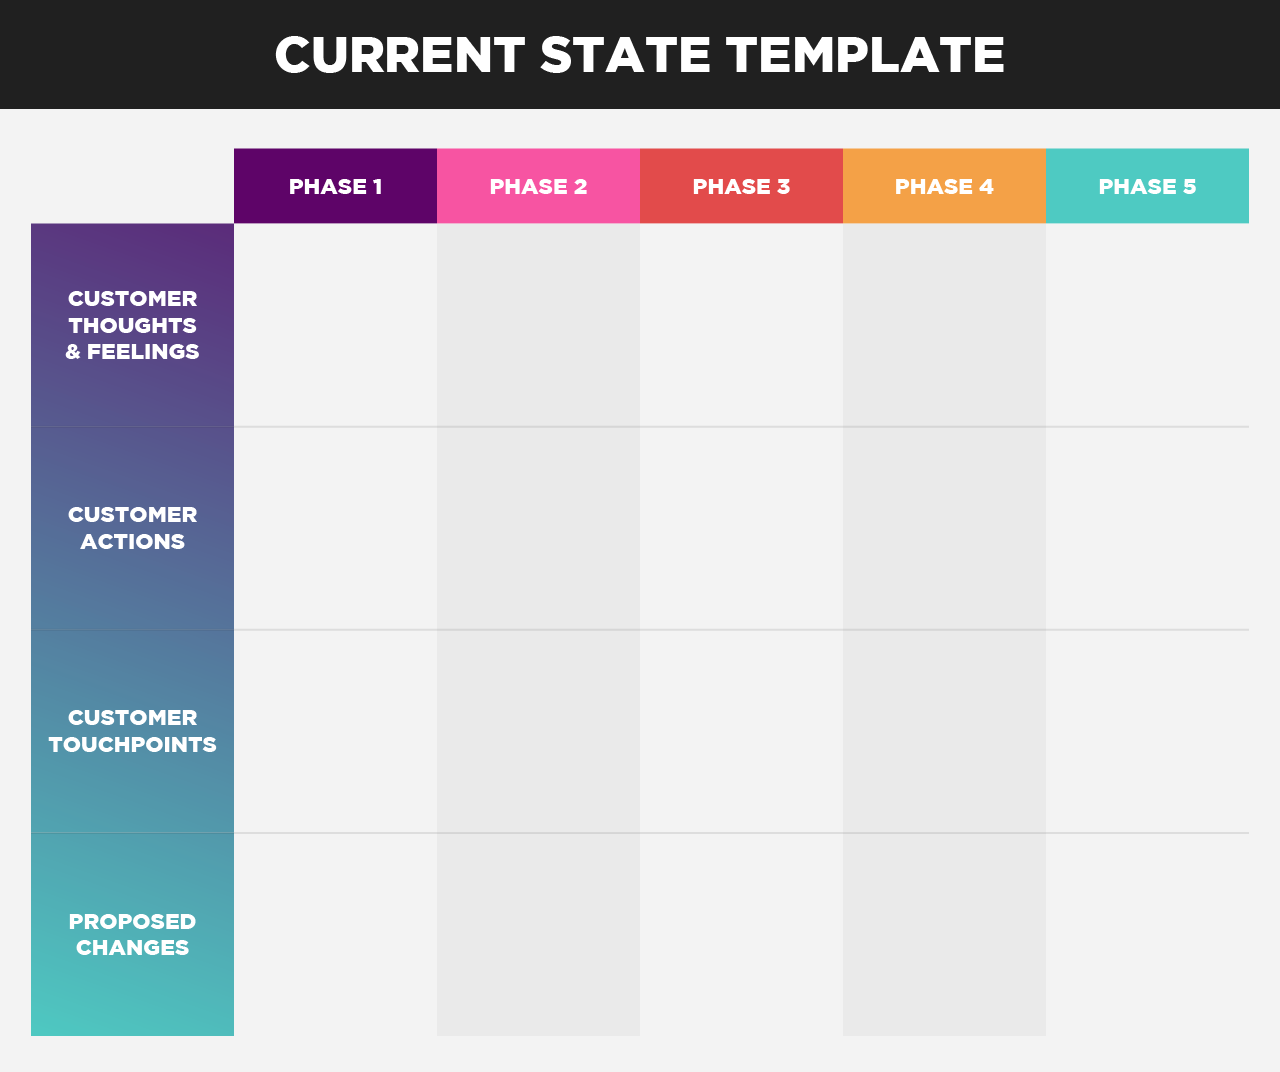 colorful current state cjm template free pdf download